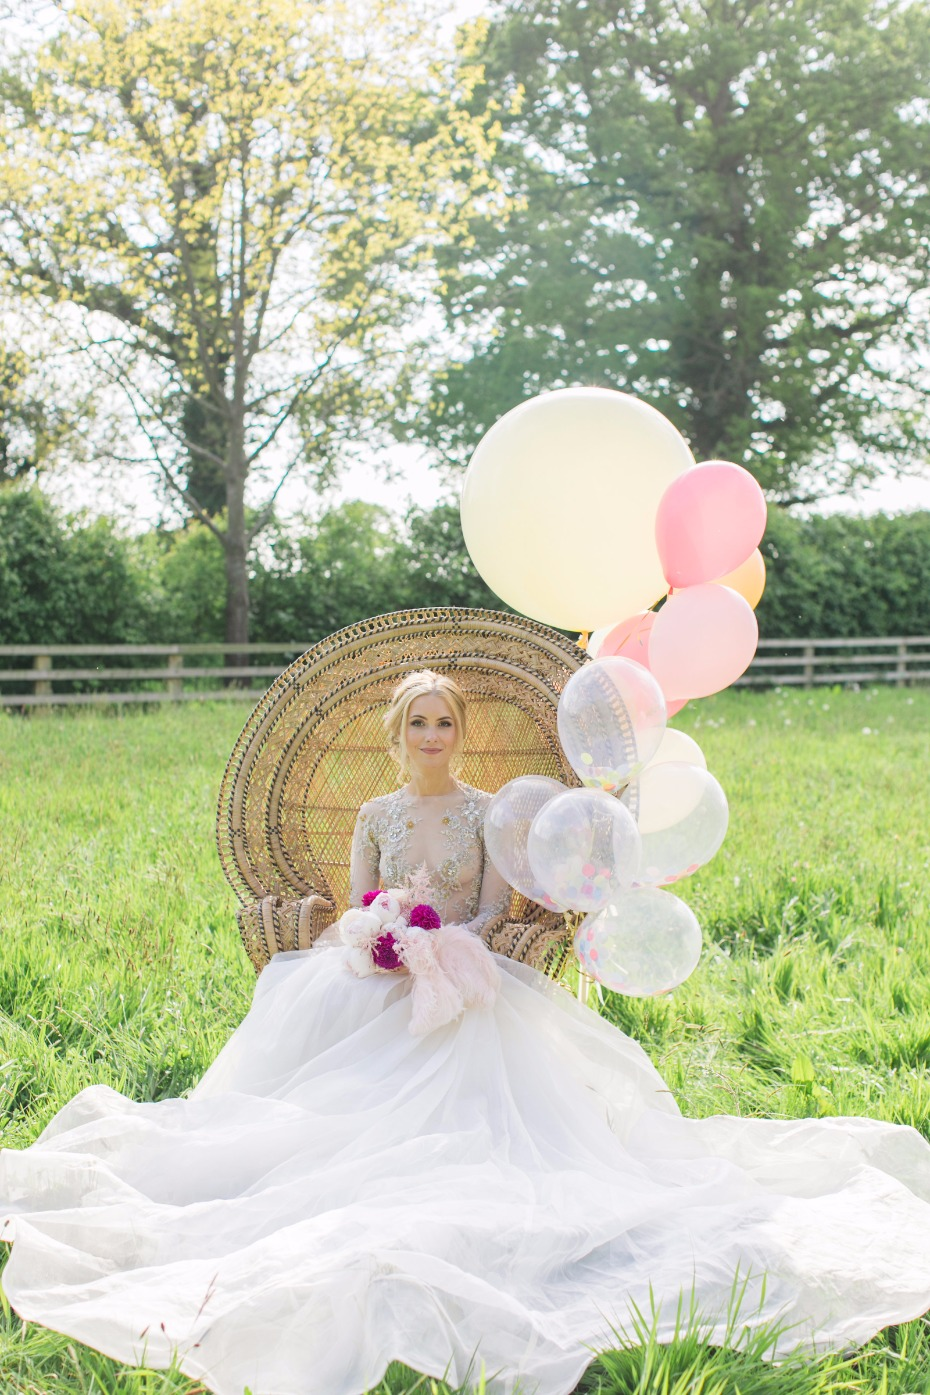 Circus inspired wedding ideas for grown ups